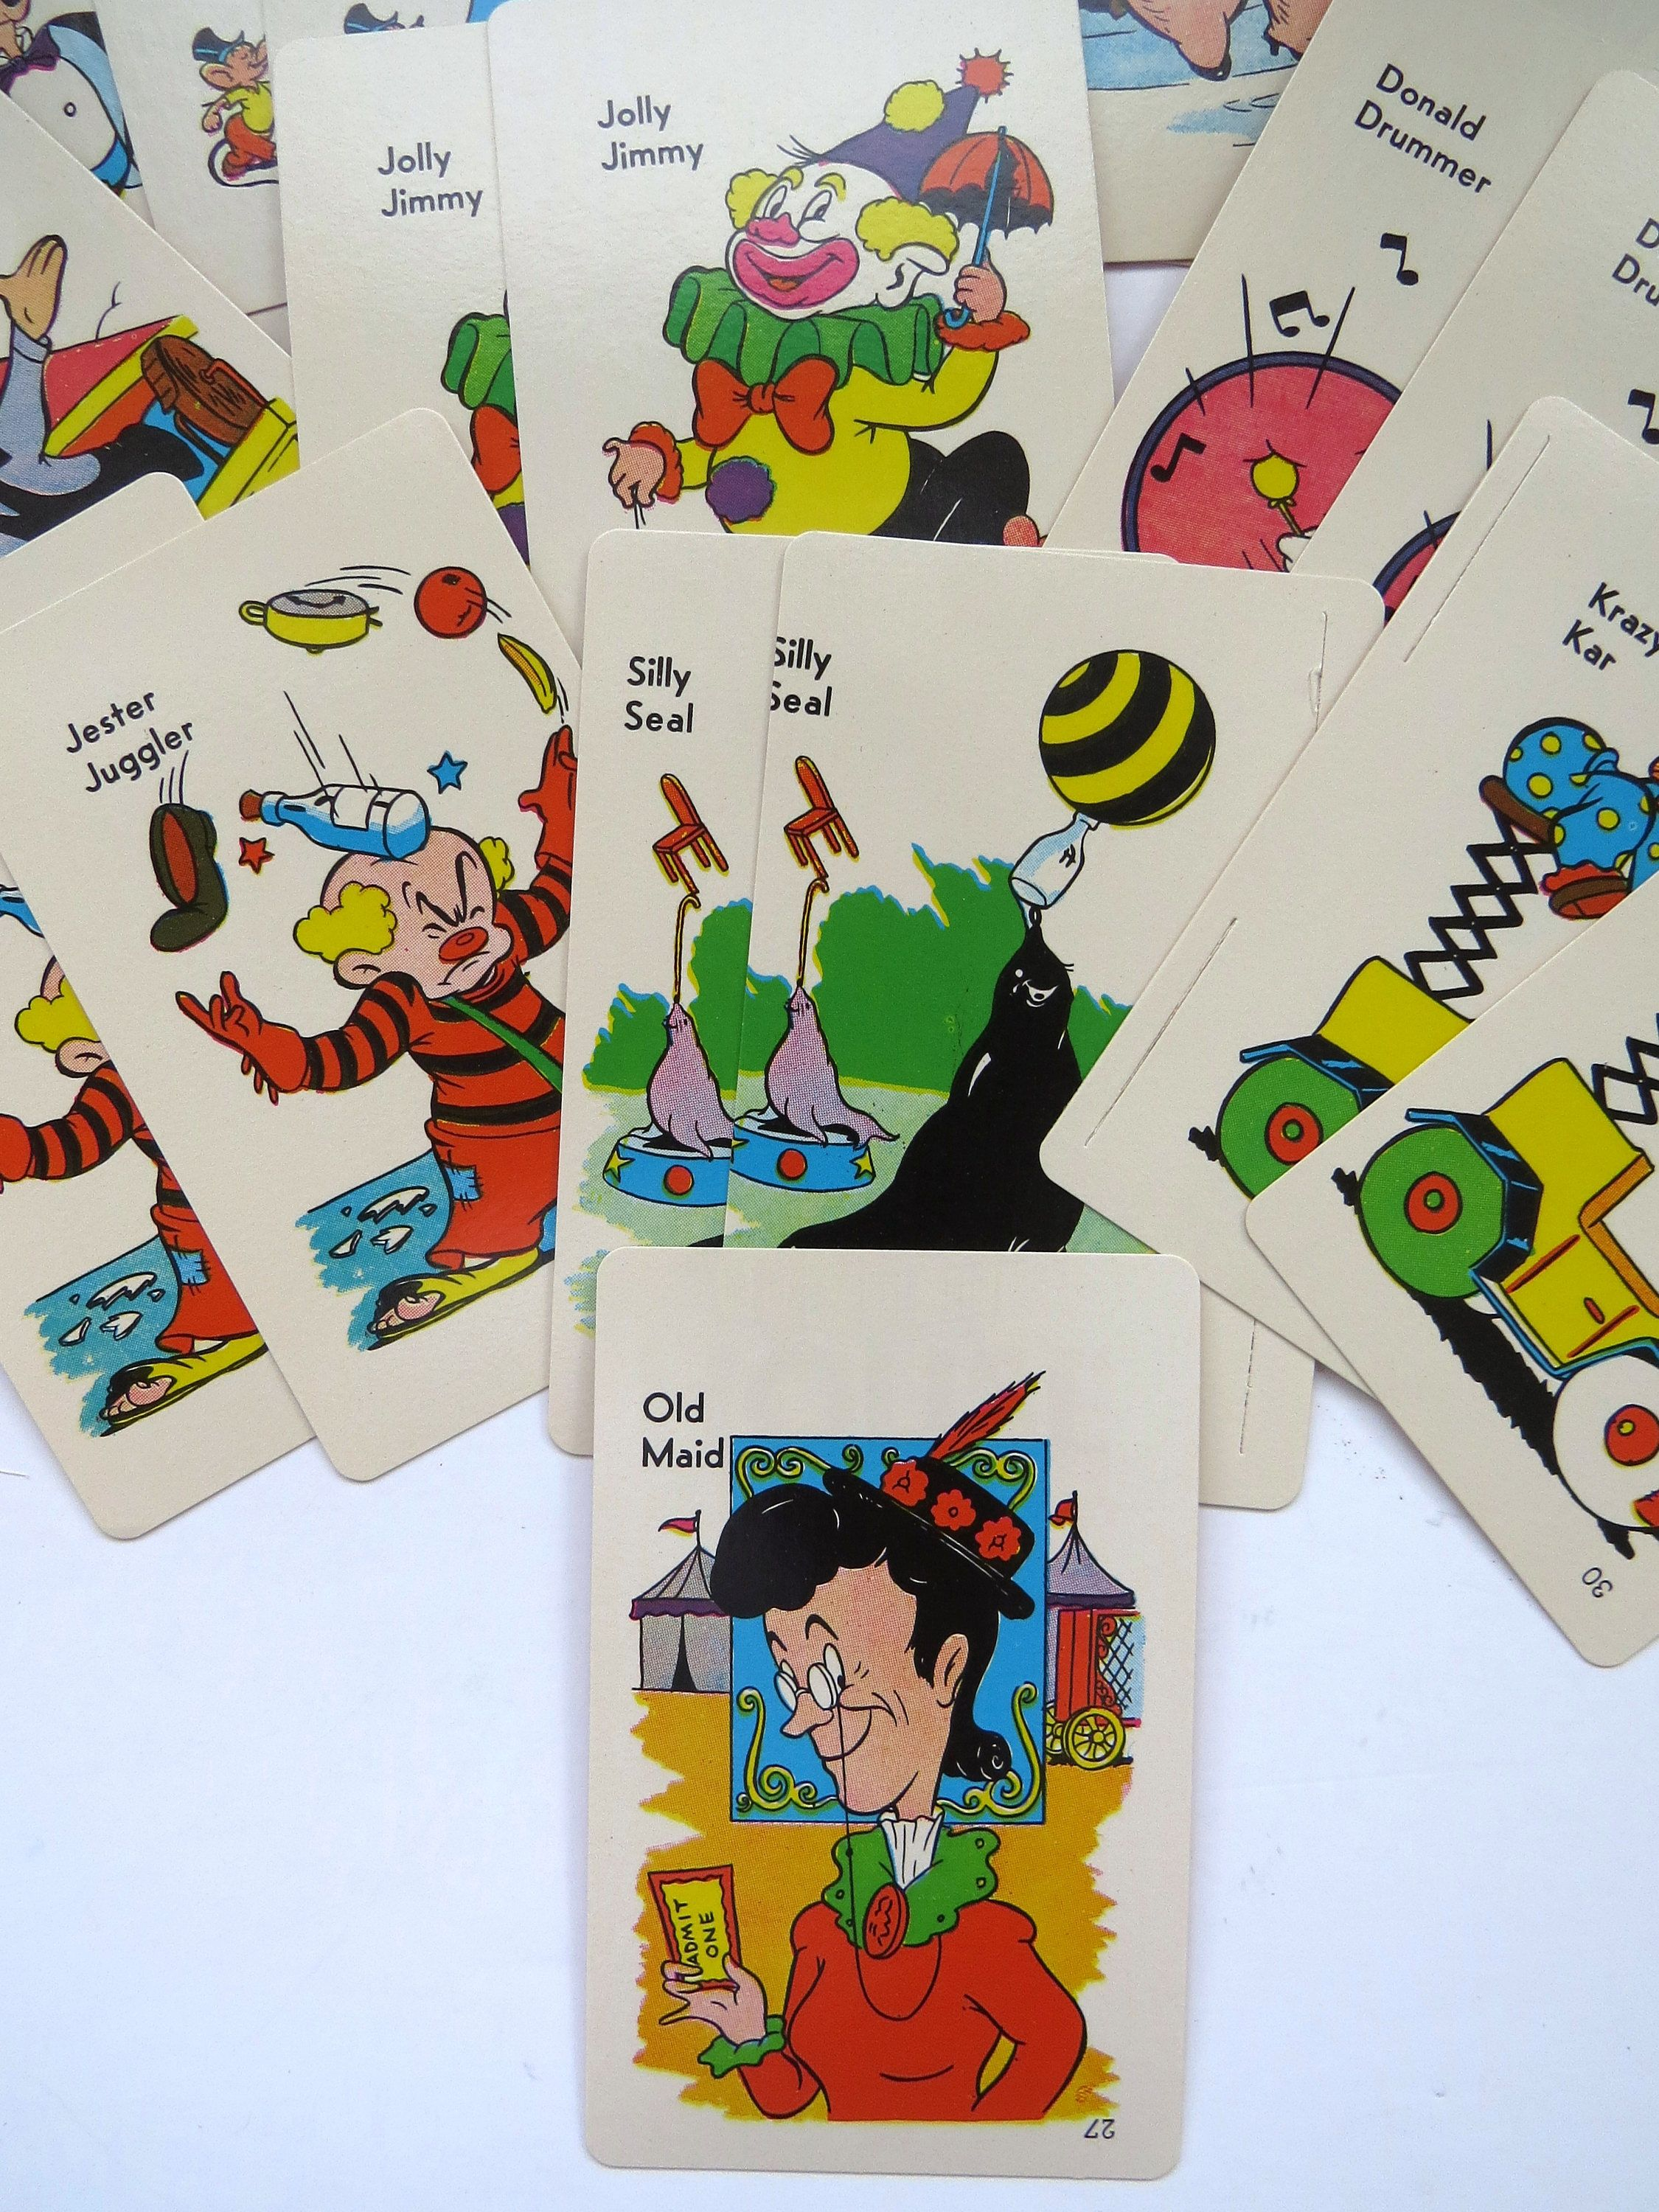 1959 old maid playing cards by ed u cards circus edition